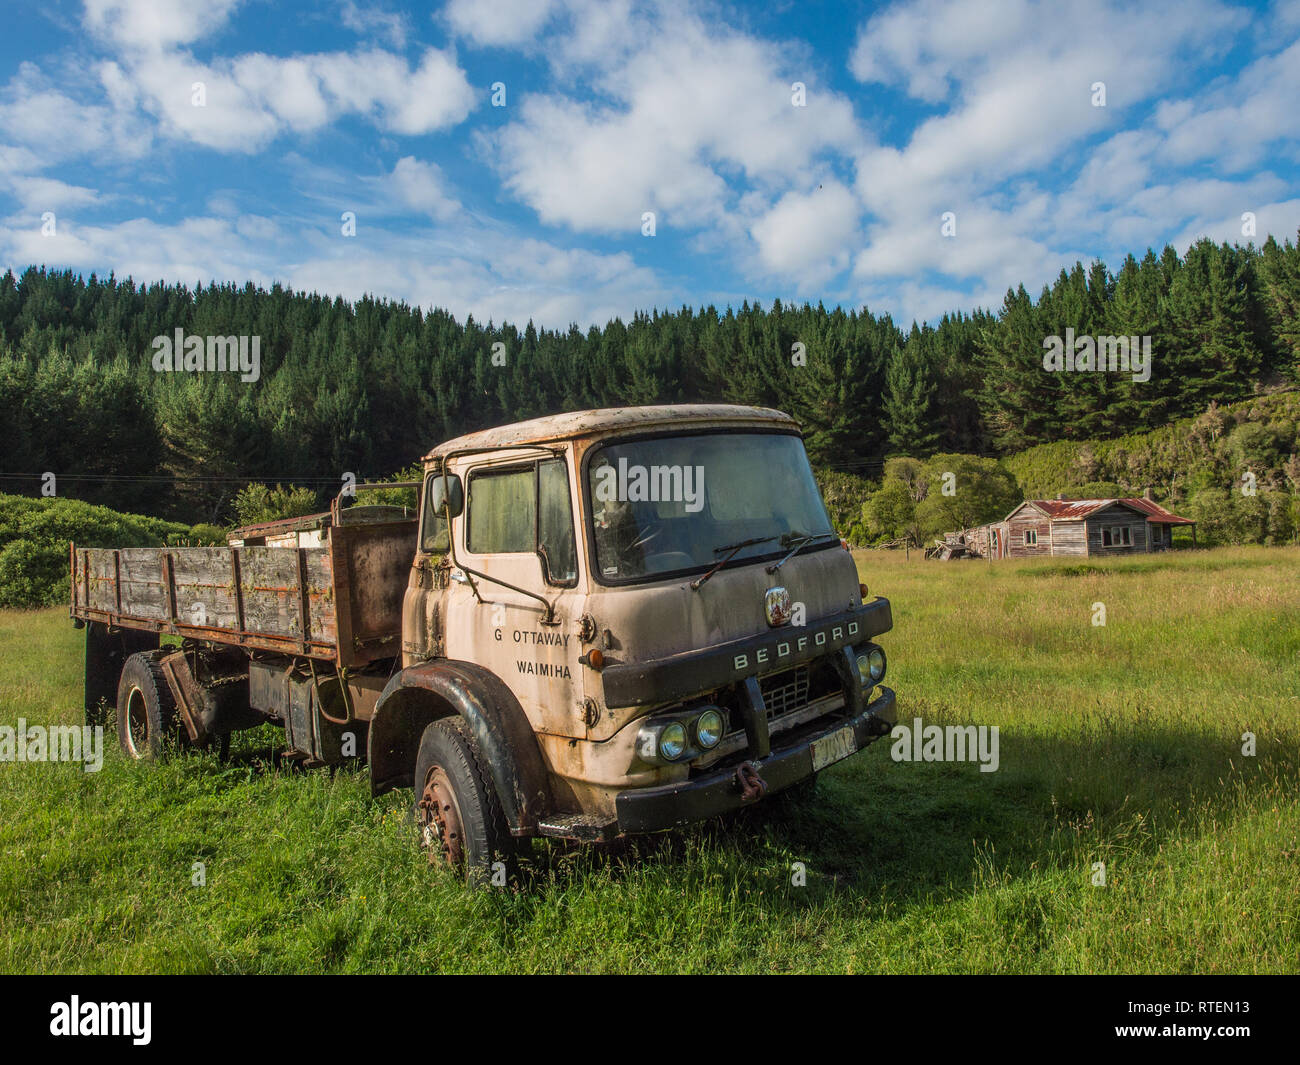 Derelict Bedford truck and abandoned house, Endeans Mill, Waimiha, Ongarue, King Country, New Zealand - Stock Image